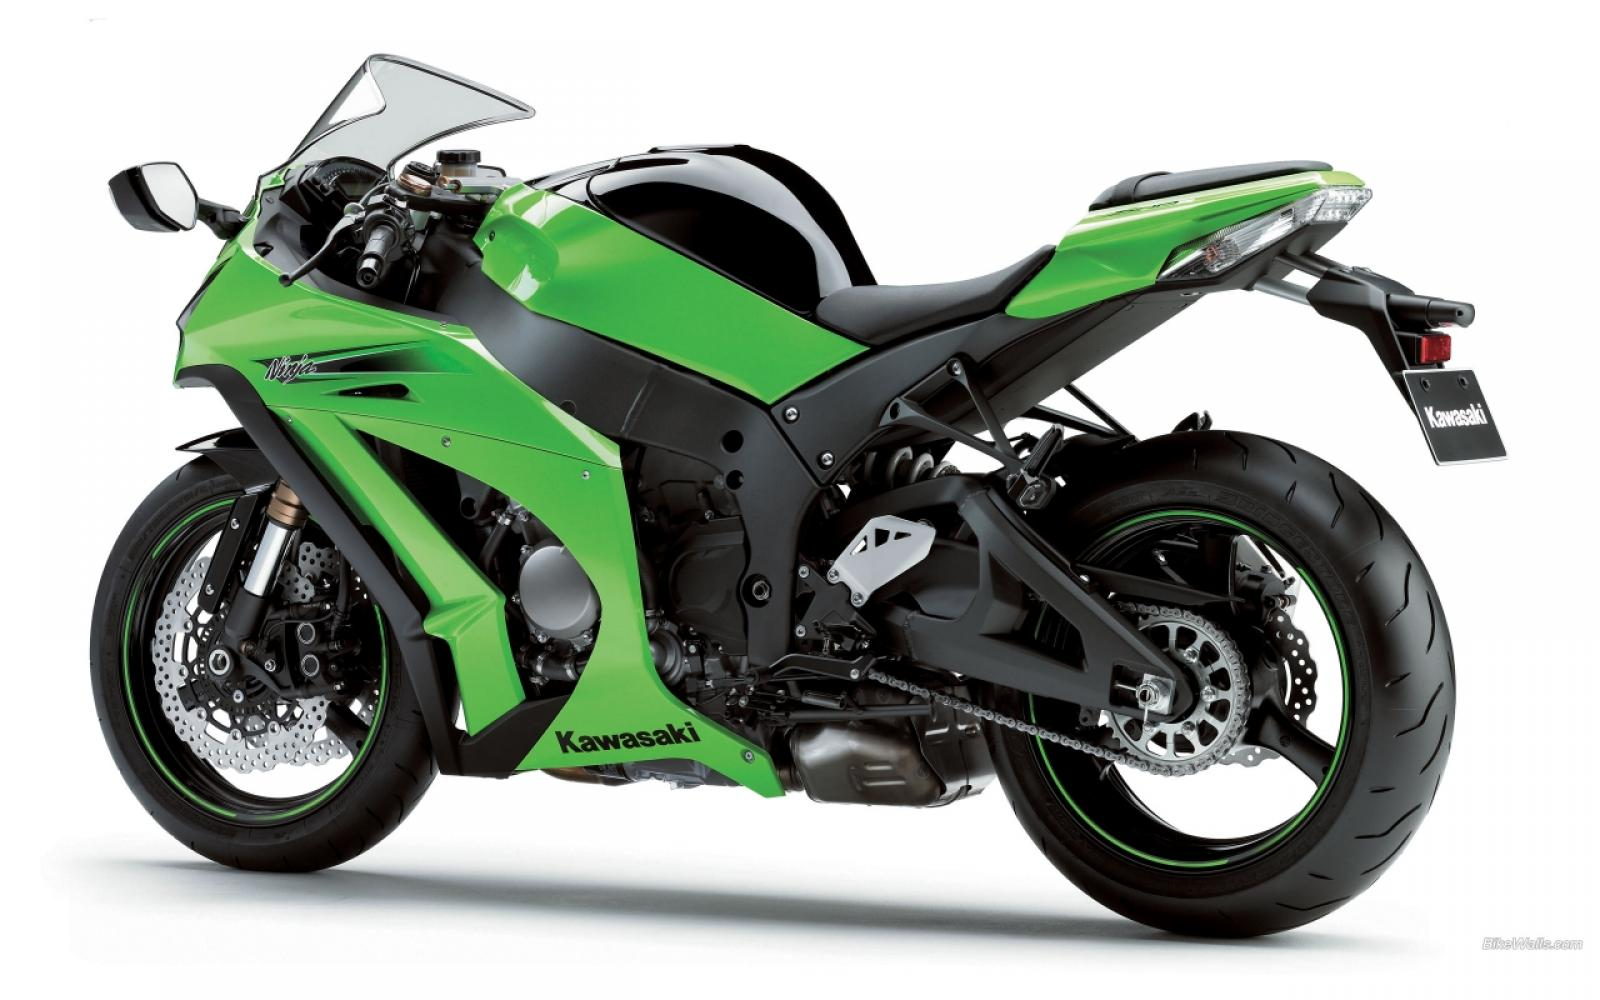 2013 kawasaki ninja zx 10r moto zombdrive com. Black Bedroom Furniture Sets. Home Design Ideas